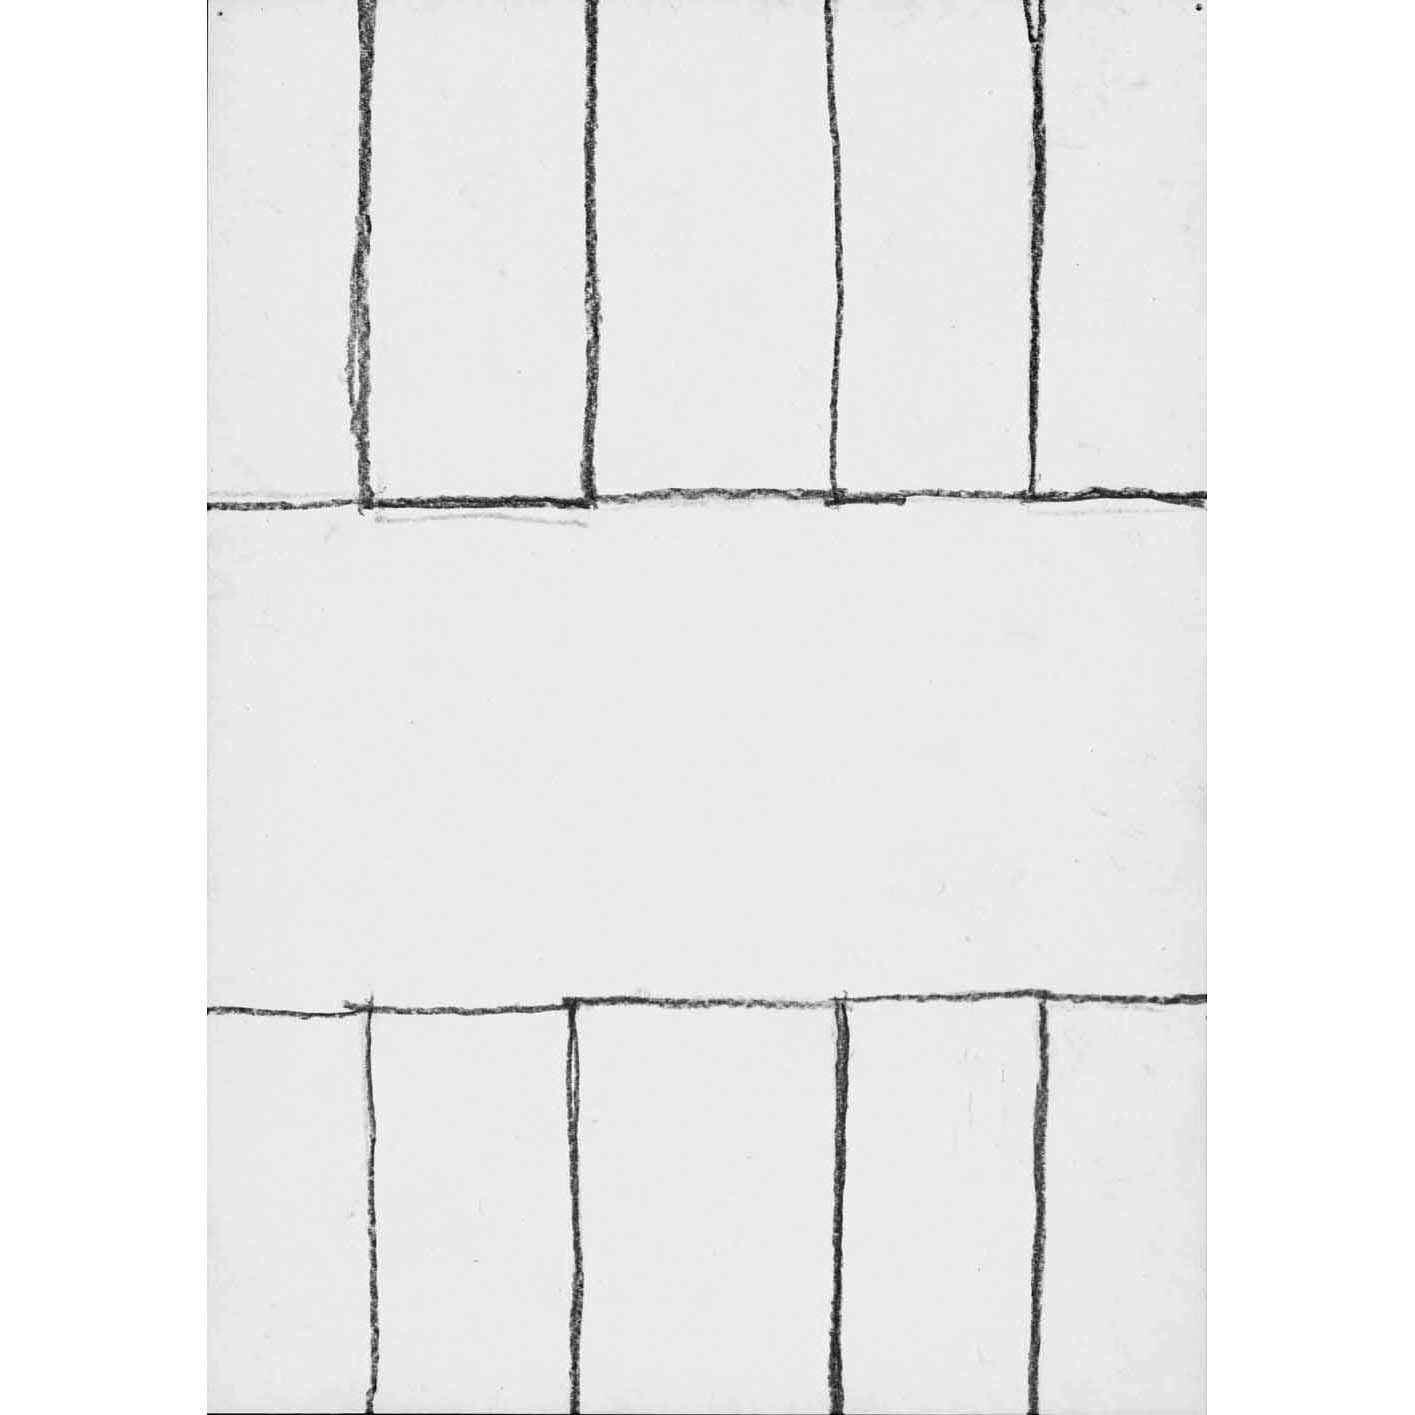 """Linda Karshan (1) 10/4/02 Graphite on paper Signed and dated verso. 21 cm x 14.7 cm (8.3"""" x 5.8"""")"""